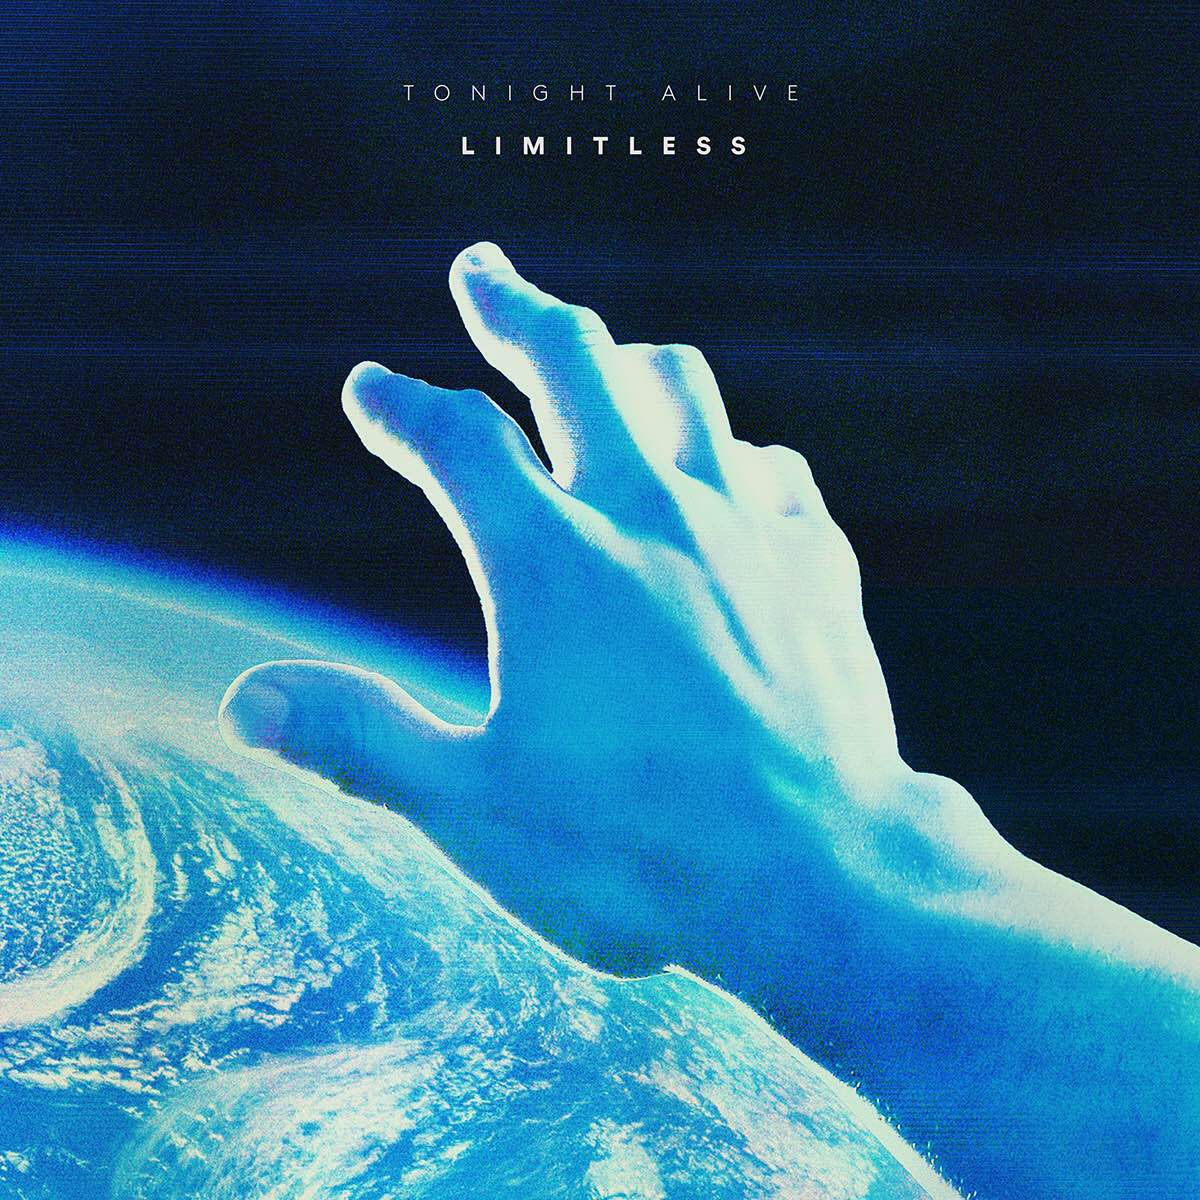 limitless tonight alive